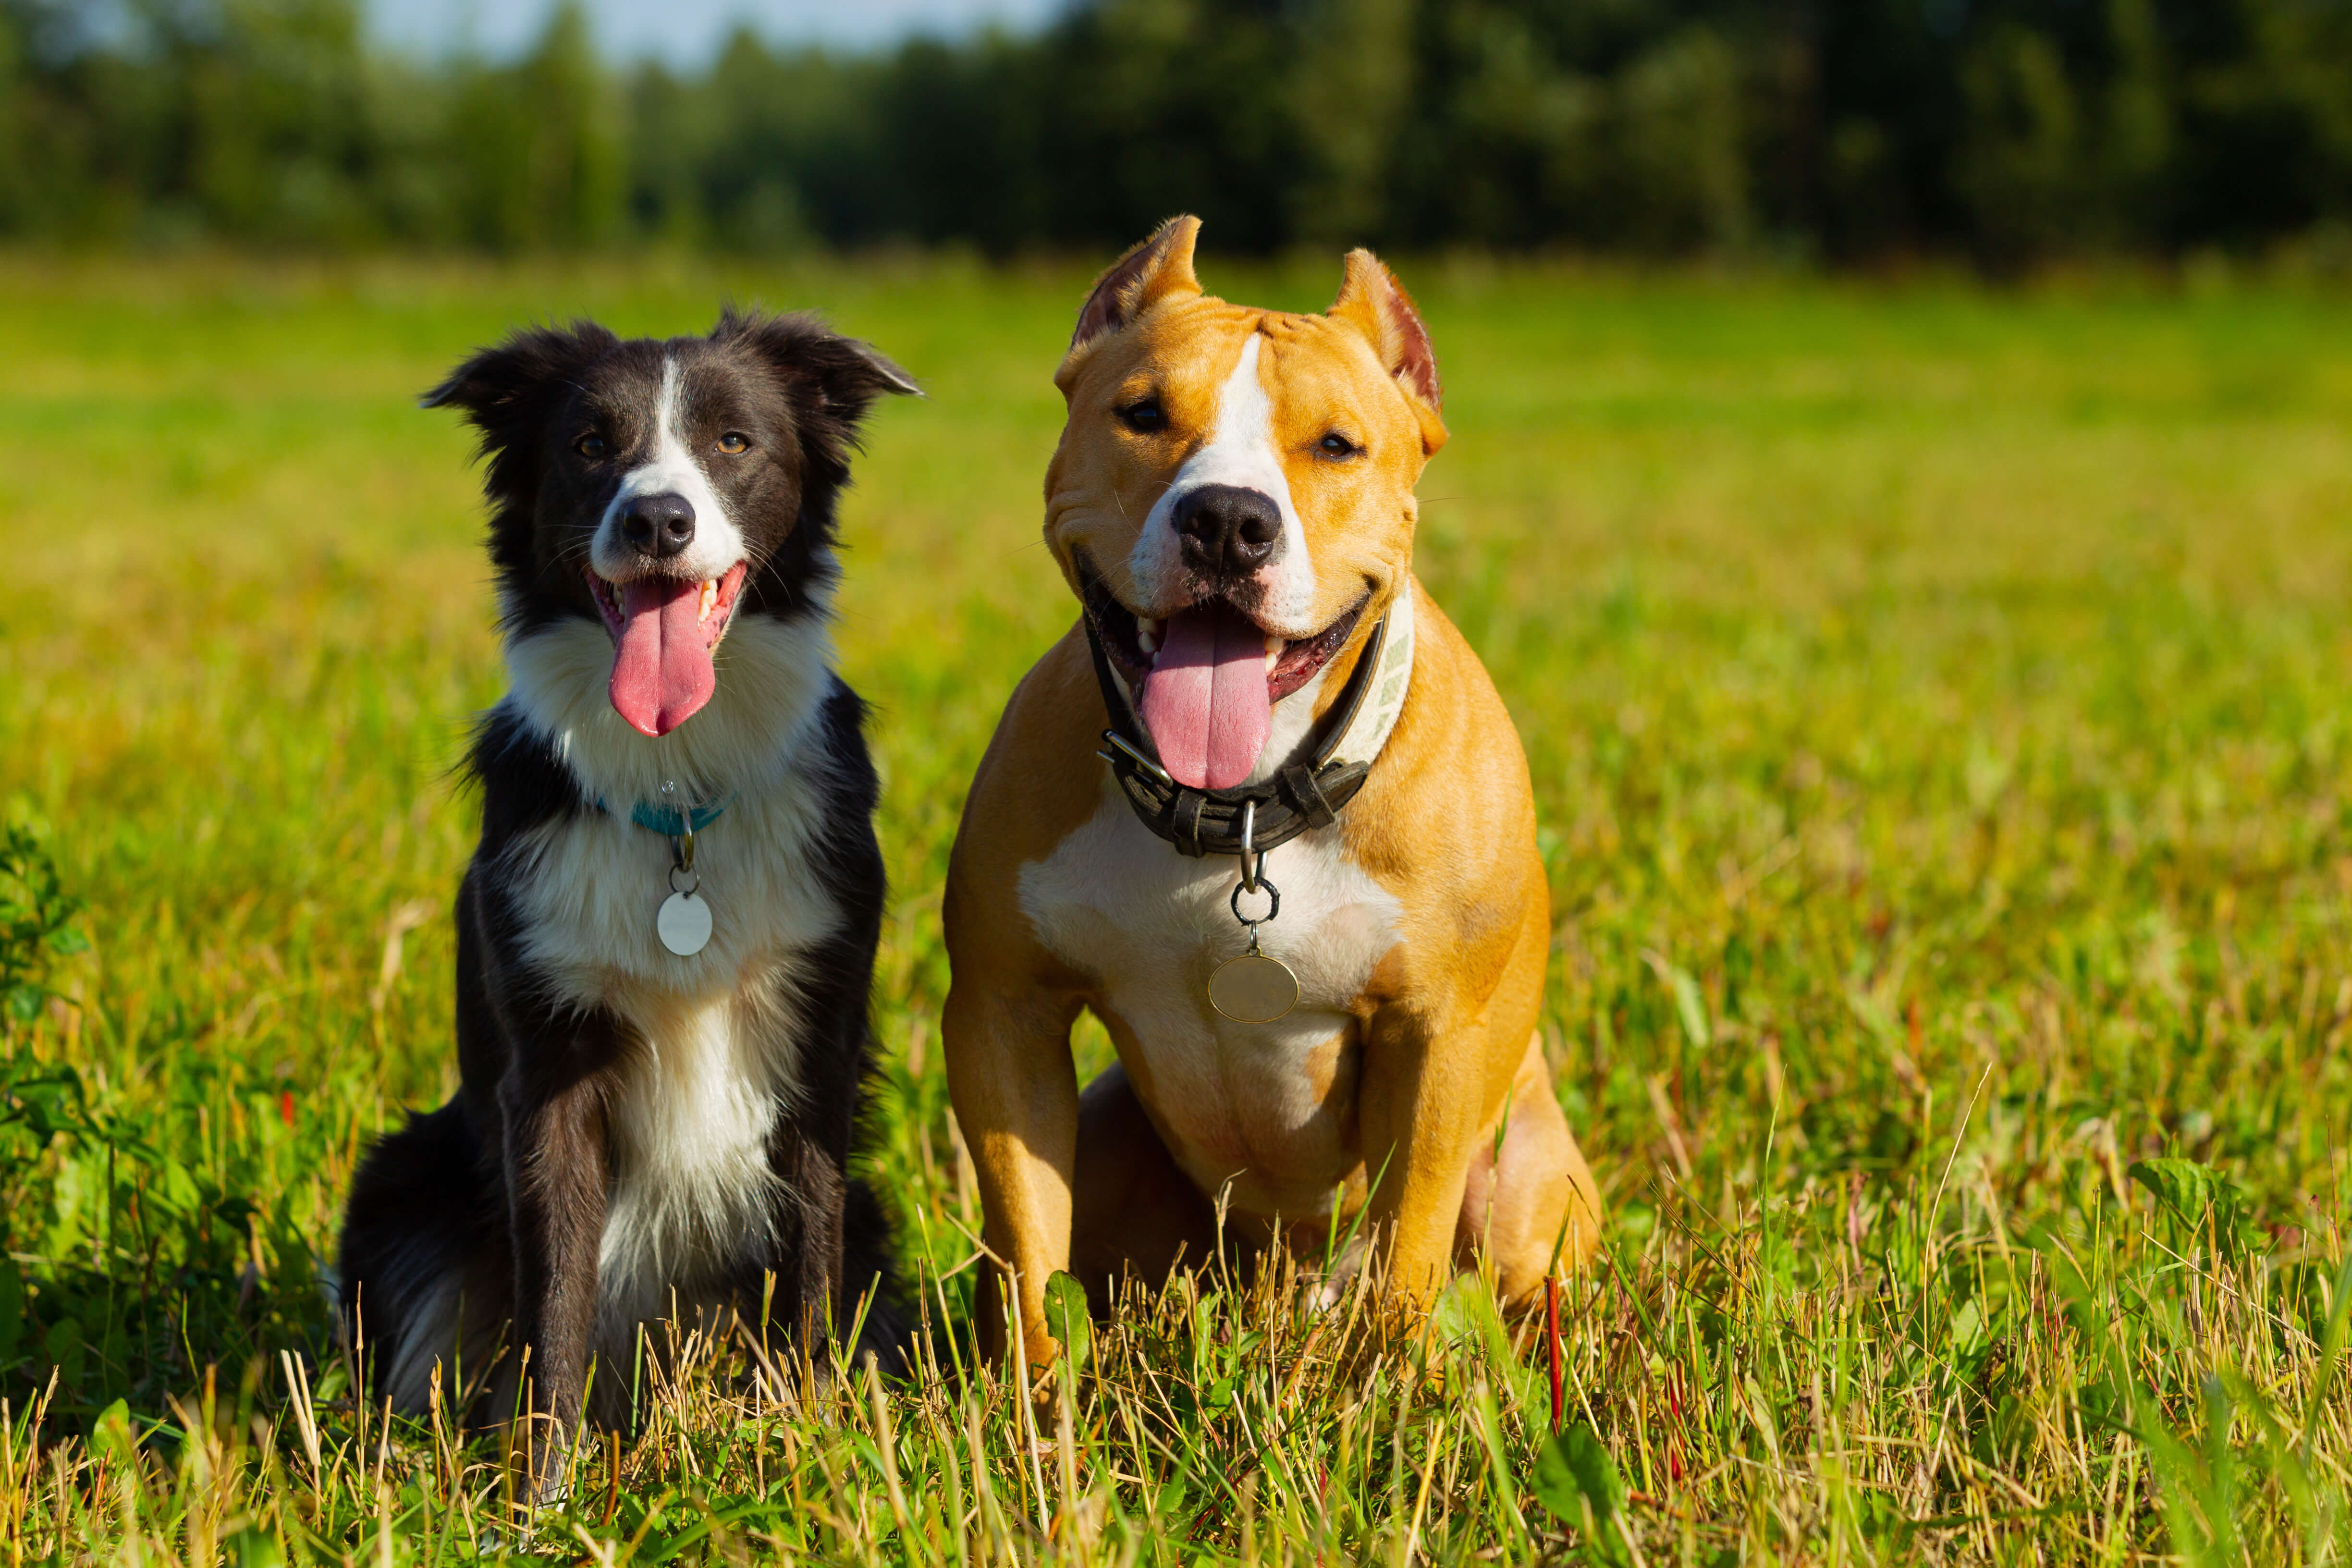 A collie and pitbull in a field with their tongues out